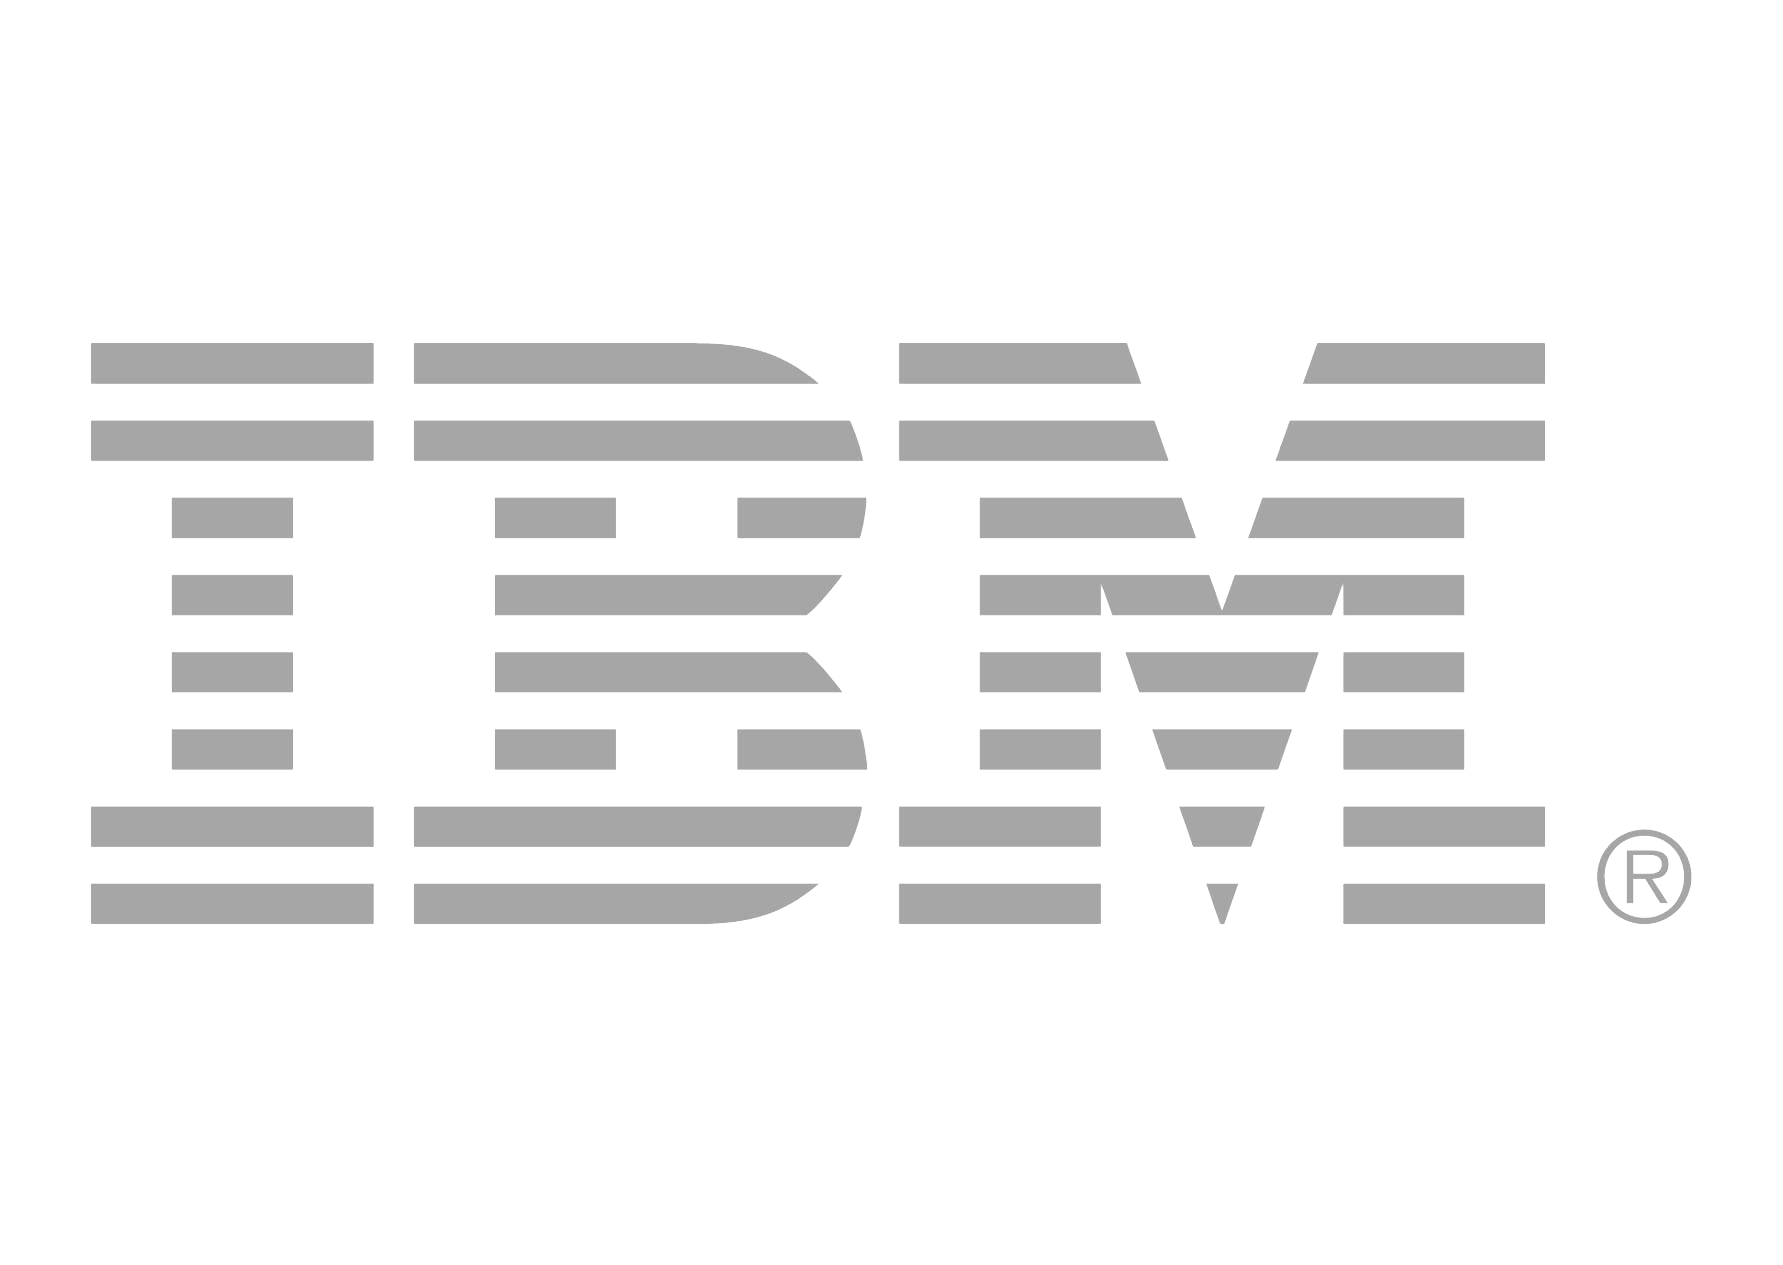 Style Graphic Ibm Typographic Design International Logo PNG Image